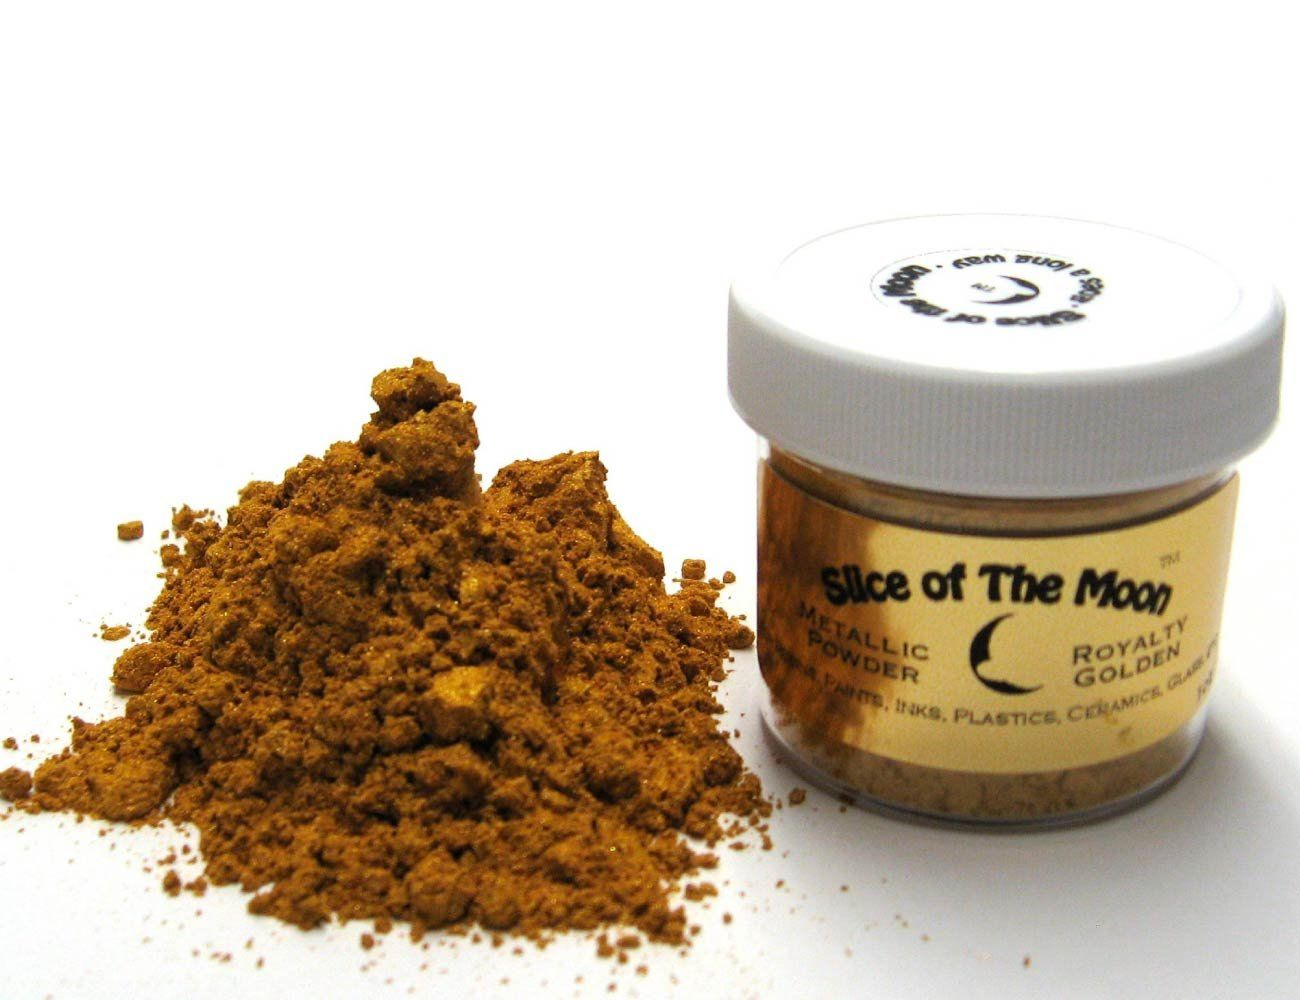 Amazon.com: Royalty Golden Mica Powder 1oz, Gold Metallic Powder, Cosmetic Mica, Slice of the Moon: Electronics